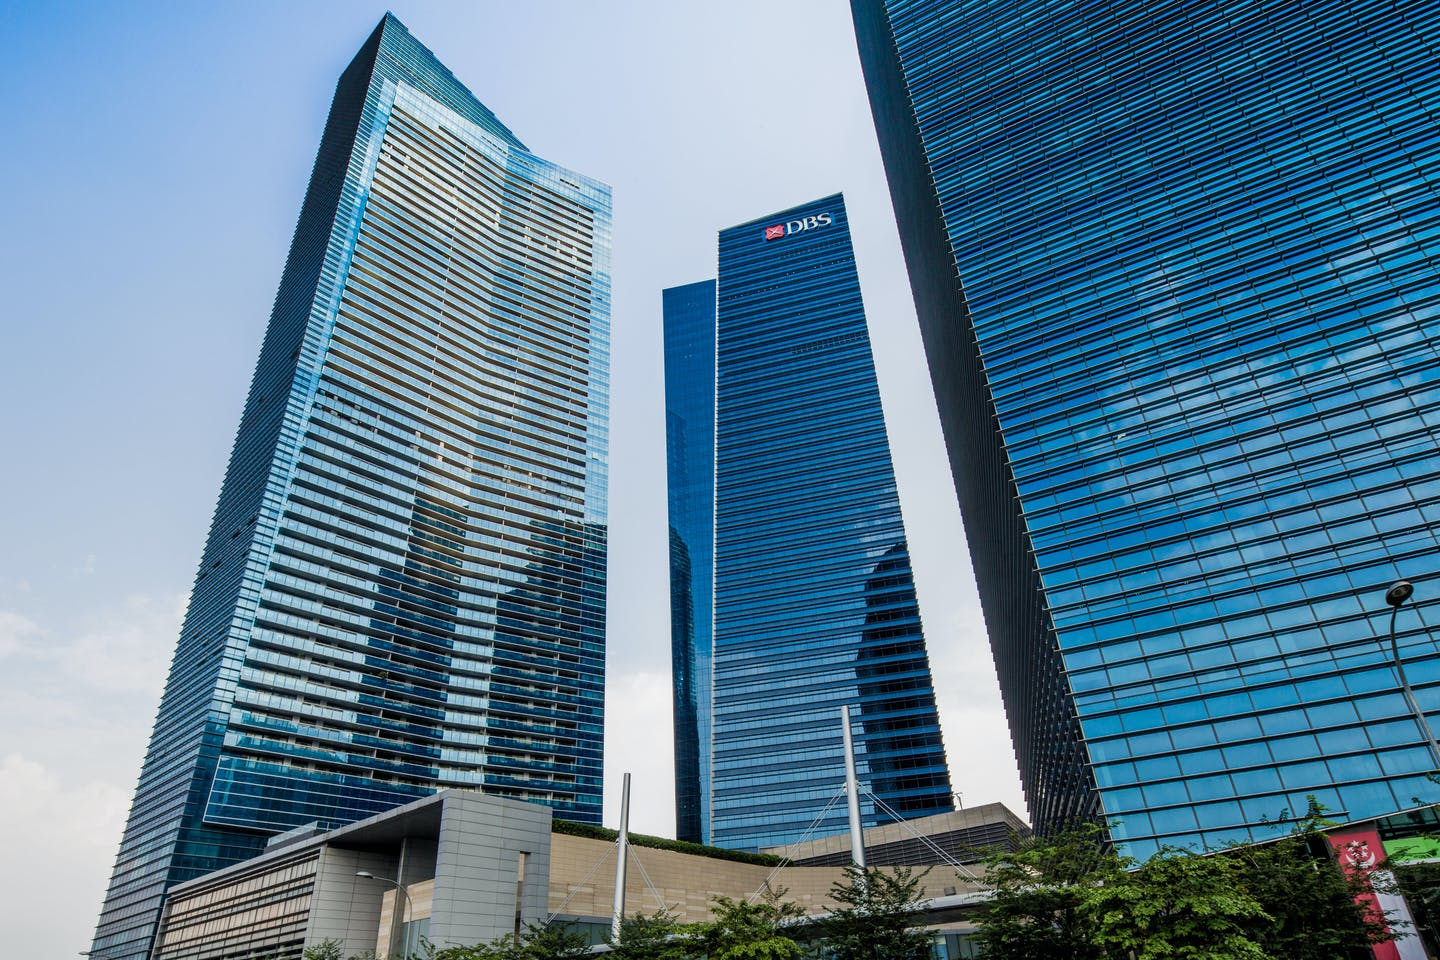 DBS Bank's headquarters in Singapore. Image: DBS